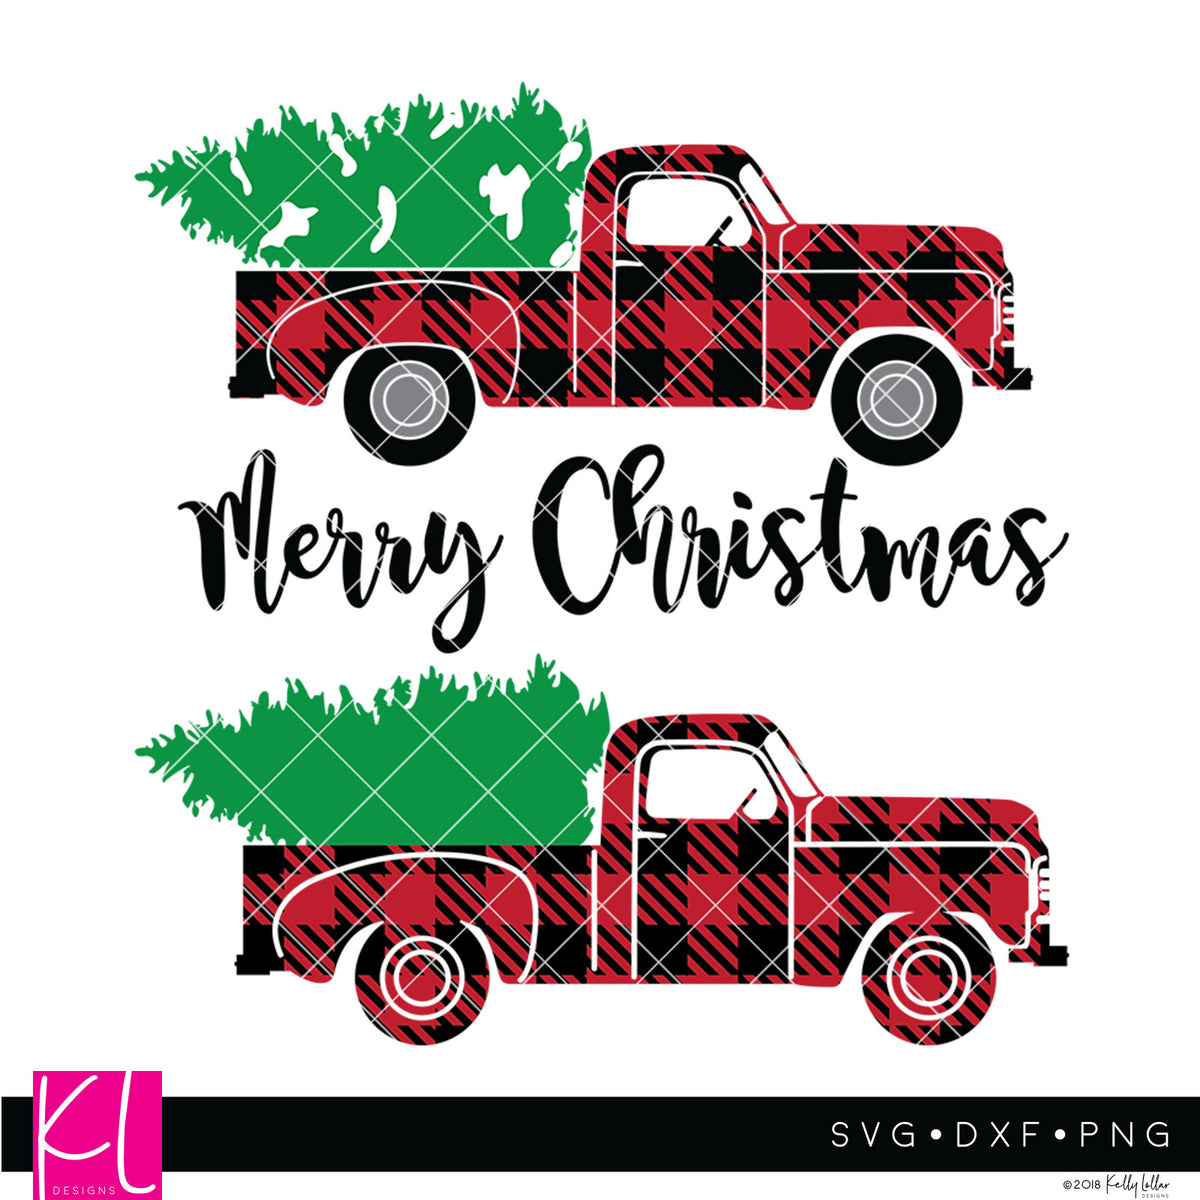 Buffalo Plaid svg pack of the Vintage Red Christmas Truck - 3 versions included